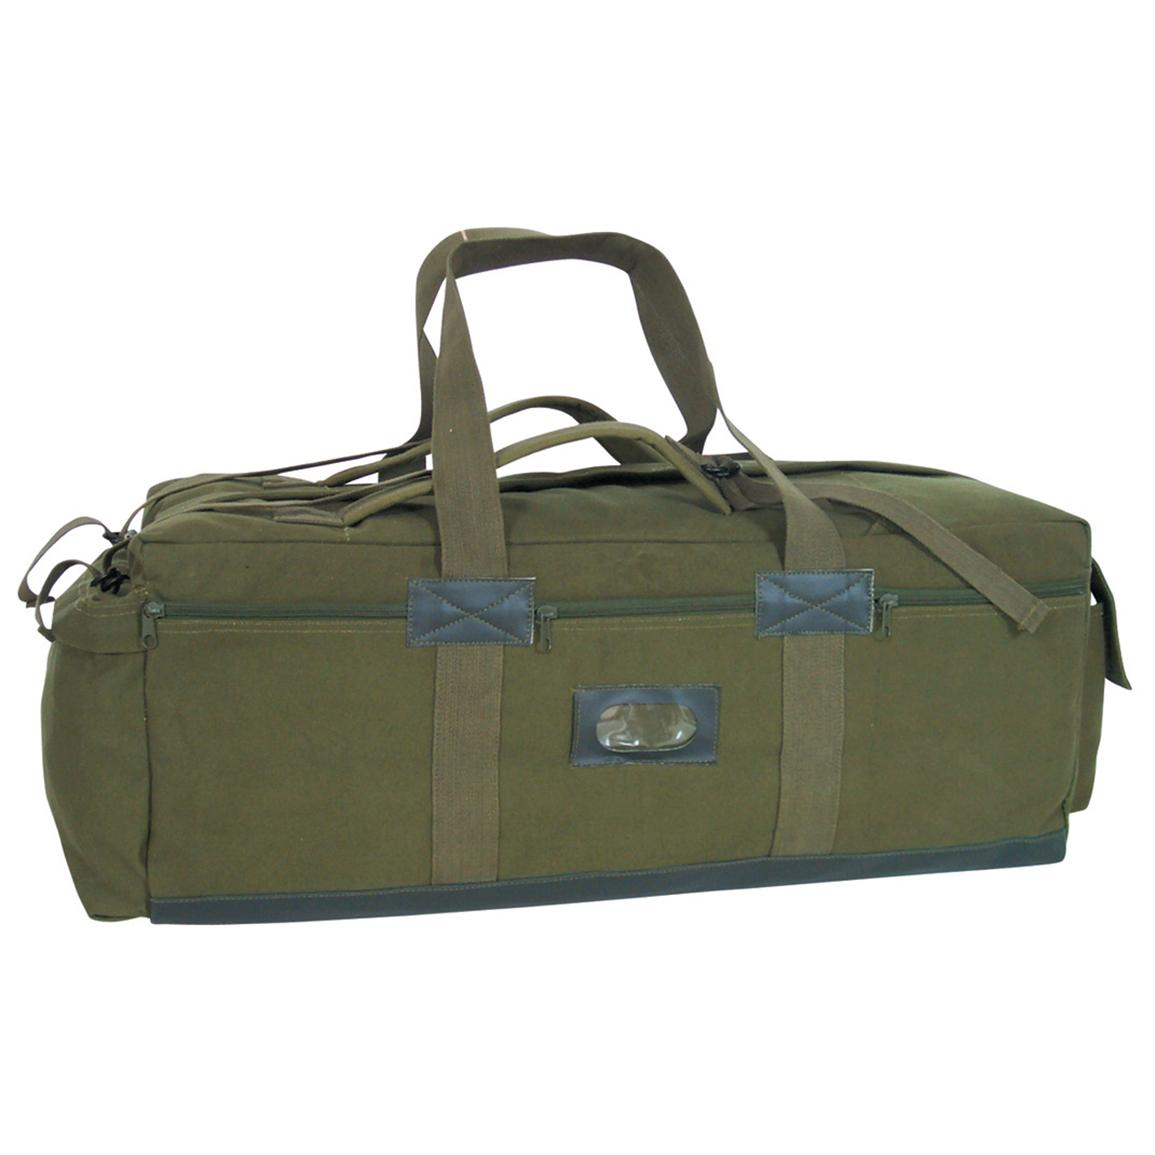 Fox Outdoor™ IDF Military-style Tactical Bag, Olive Drab